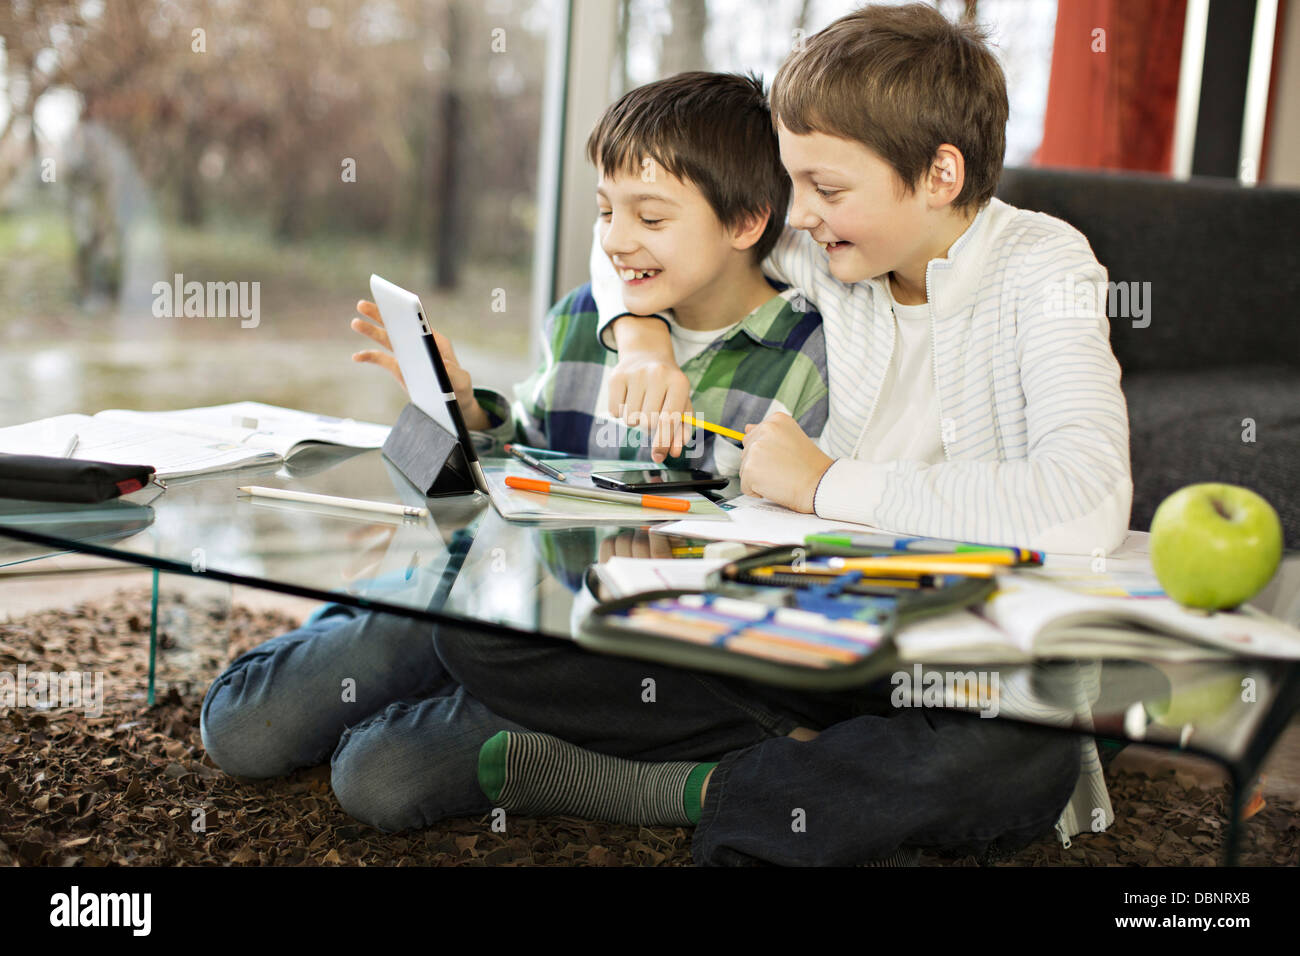 Two boys using digital tablet, Osijek, Croatia, Europe Stock Photo